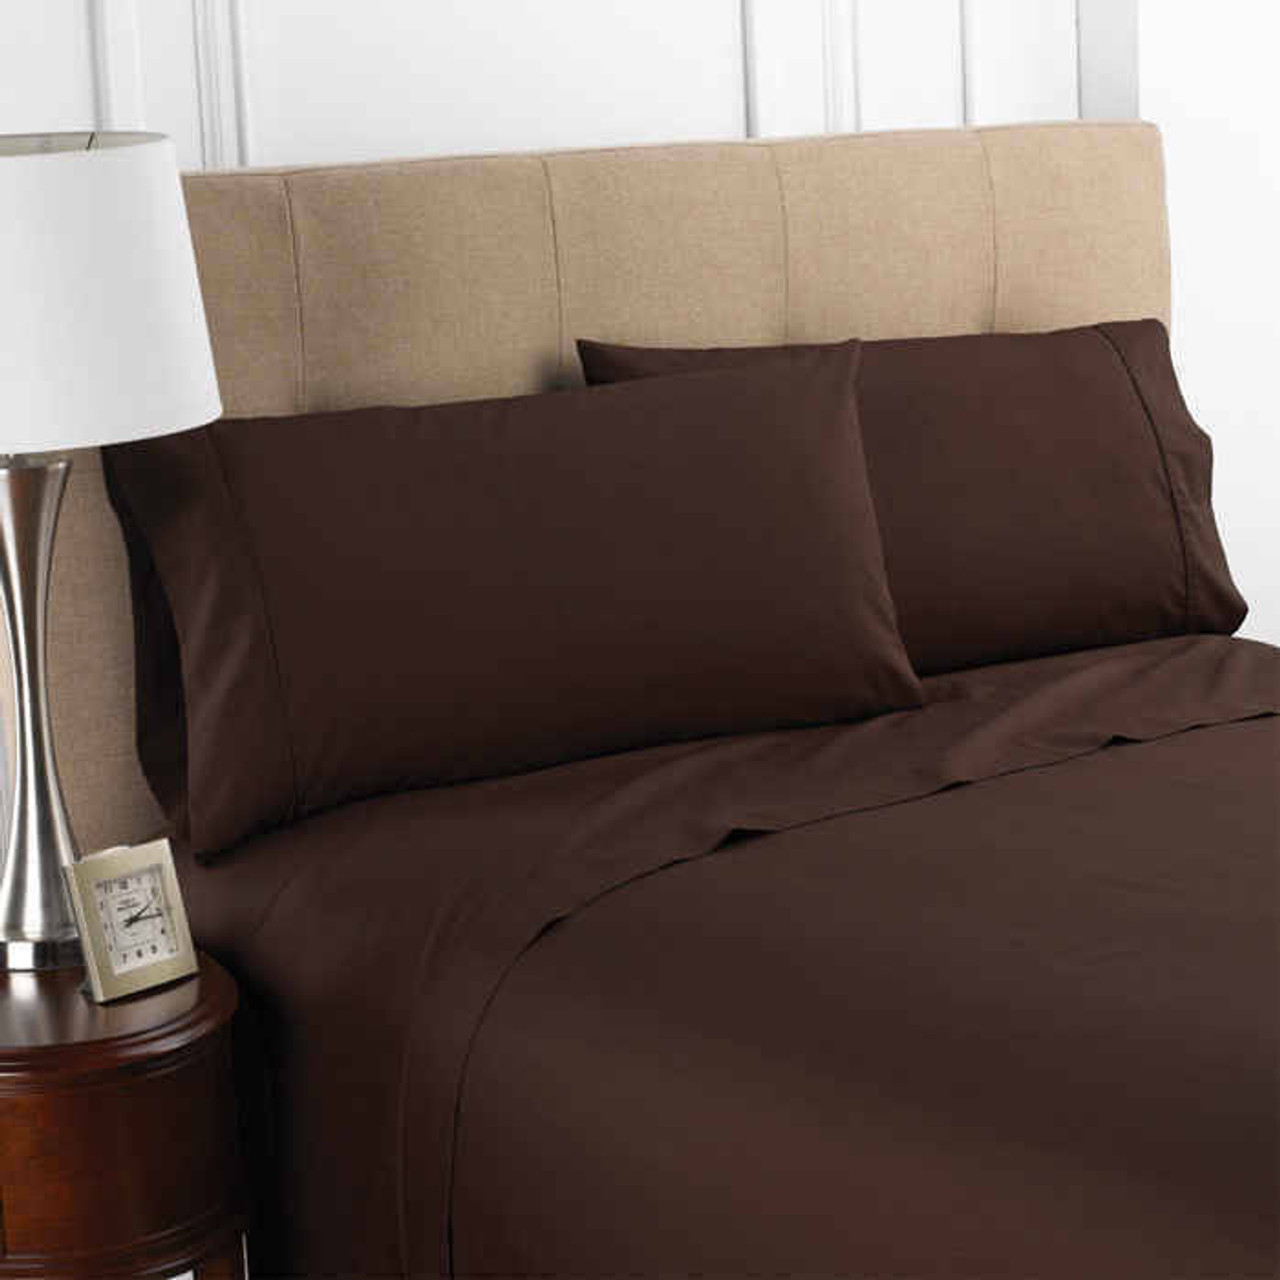 WestPoint/Martex Westpoint or Martex Colors or 200 Pillowcase - 4dz